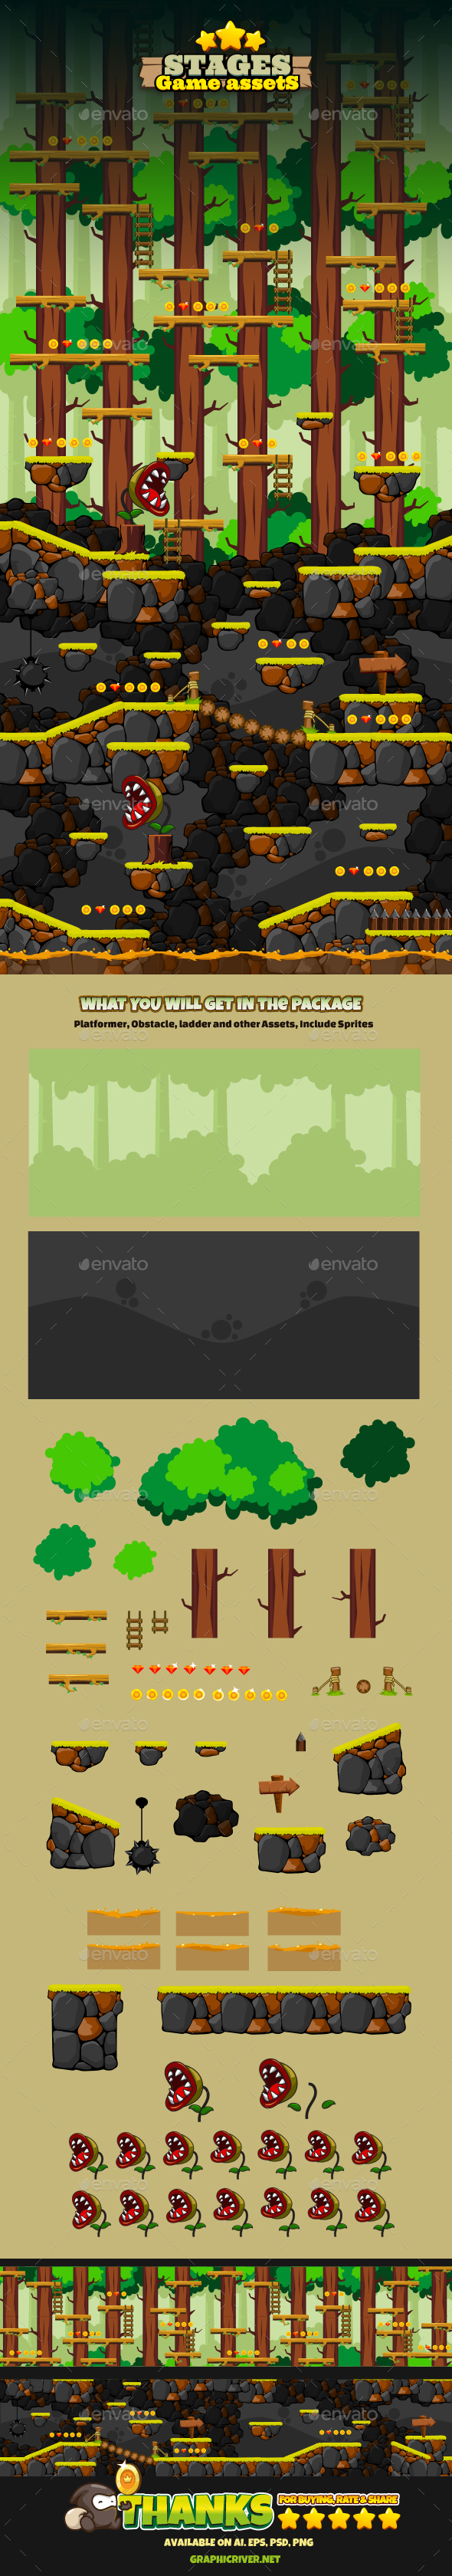 Game Stages v04 (Backgrounds)